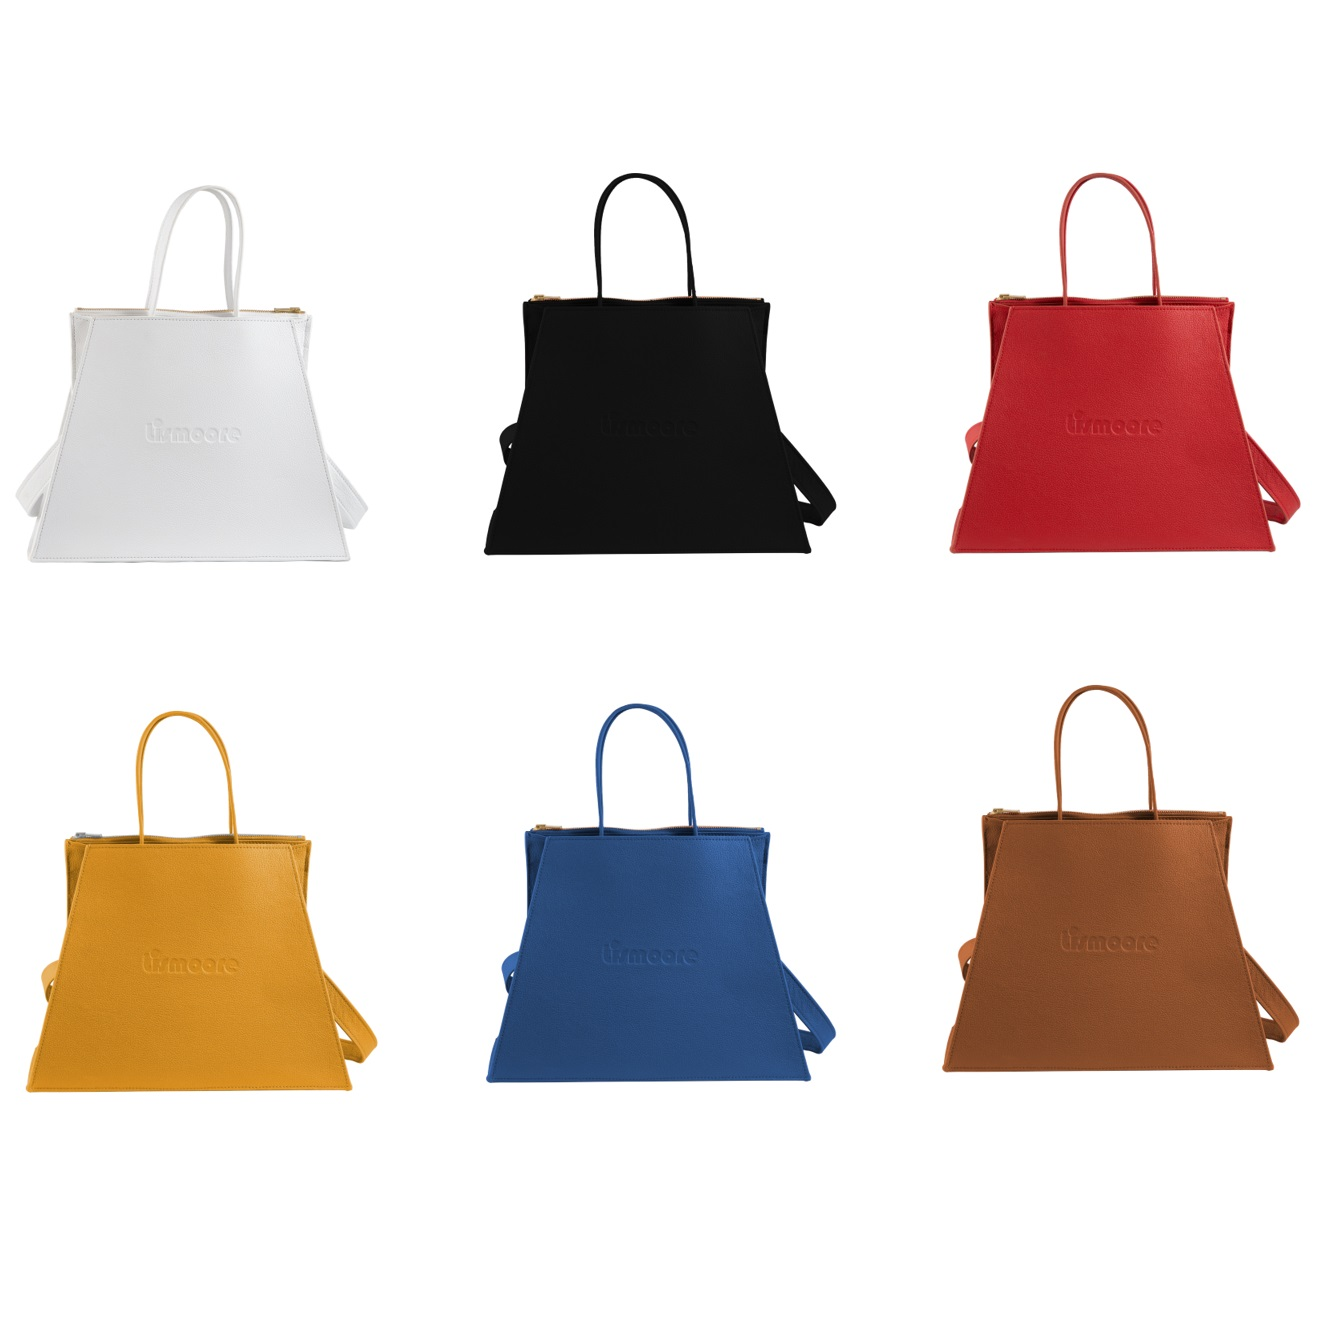 Catherine in six leather colors